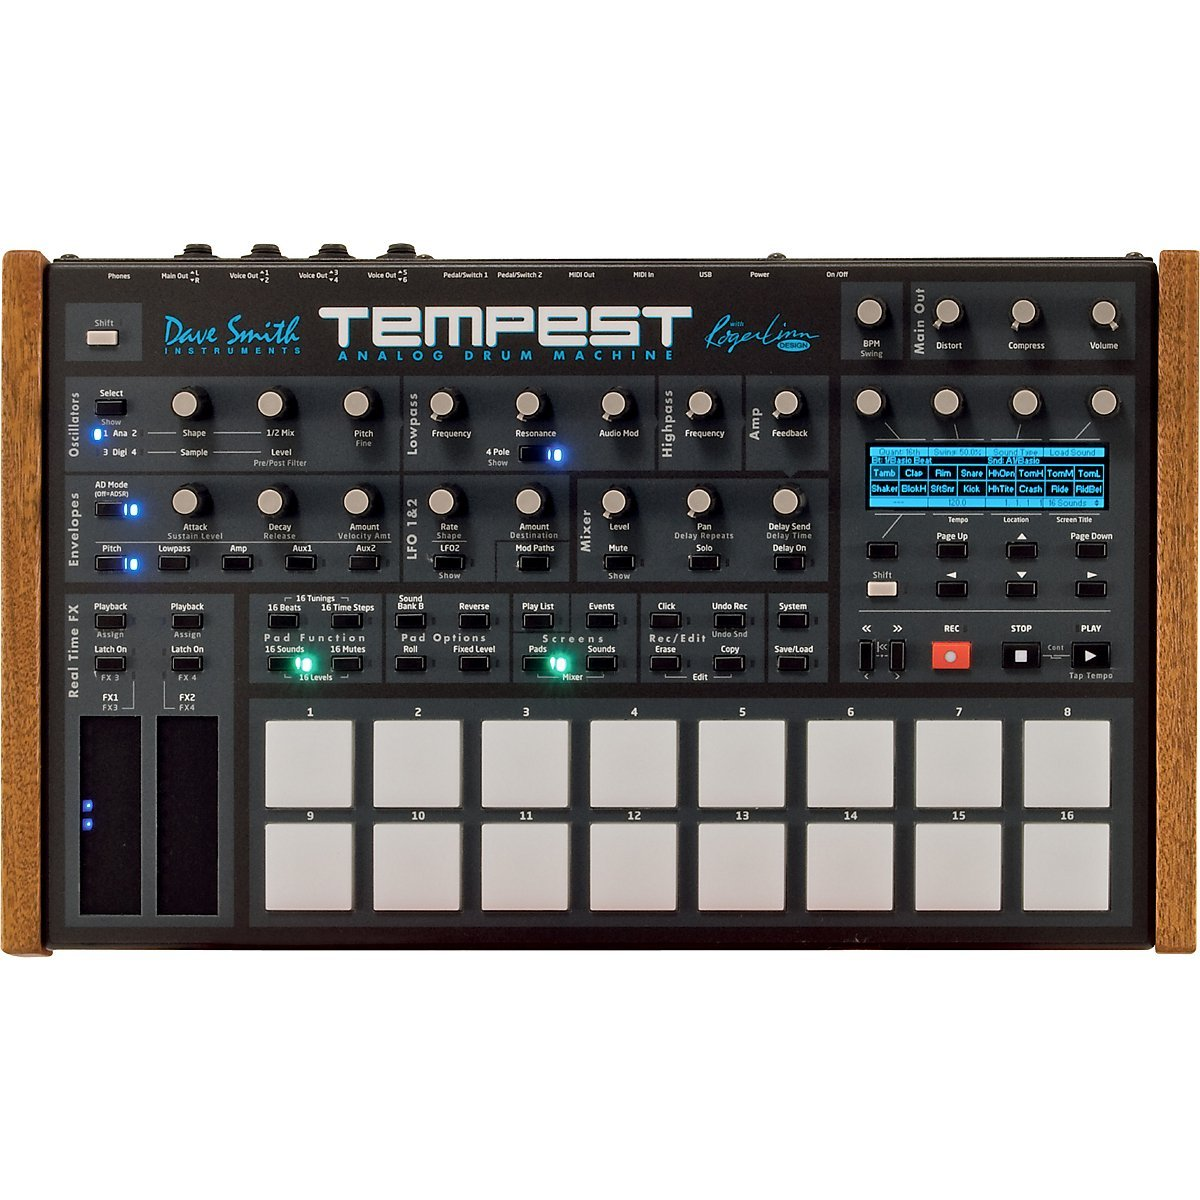 Dave Smith Instruments Tempest Drum Machines